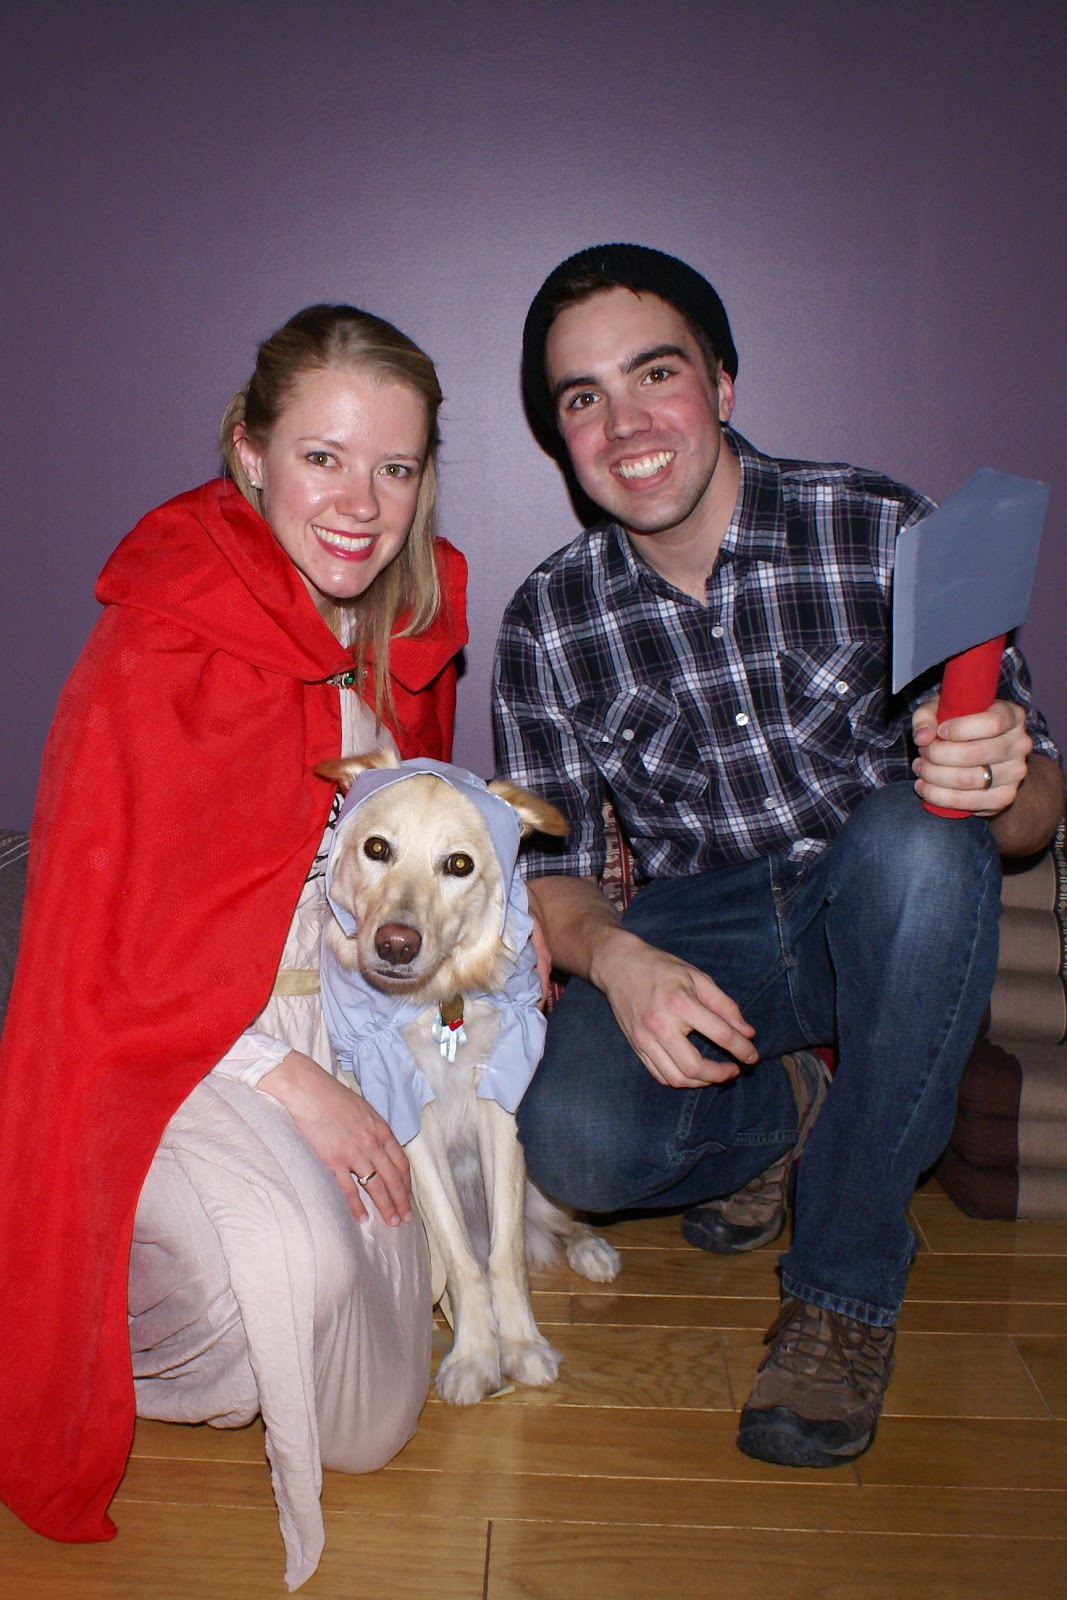 Red Riding Hood Halloween Costume with Real Wolf  sc 1 st  The Cozy Condo & The Cozy Condo: Red Riding Hood Halloween Costume with Real Wolf